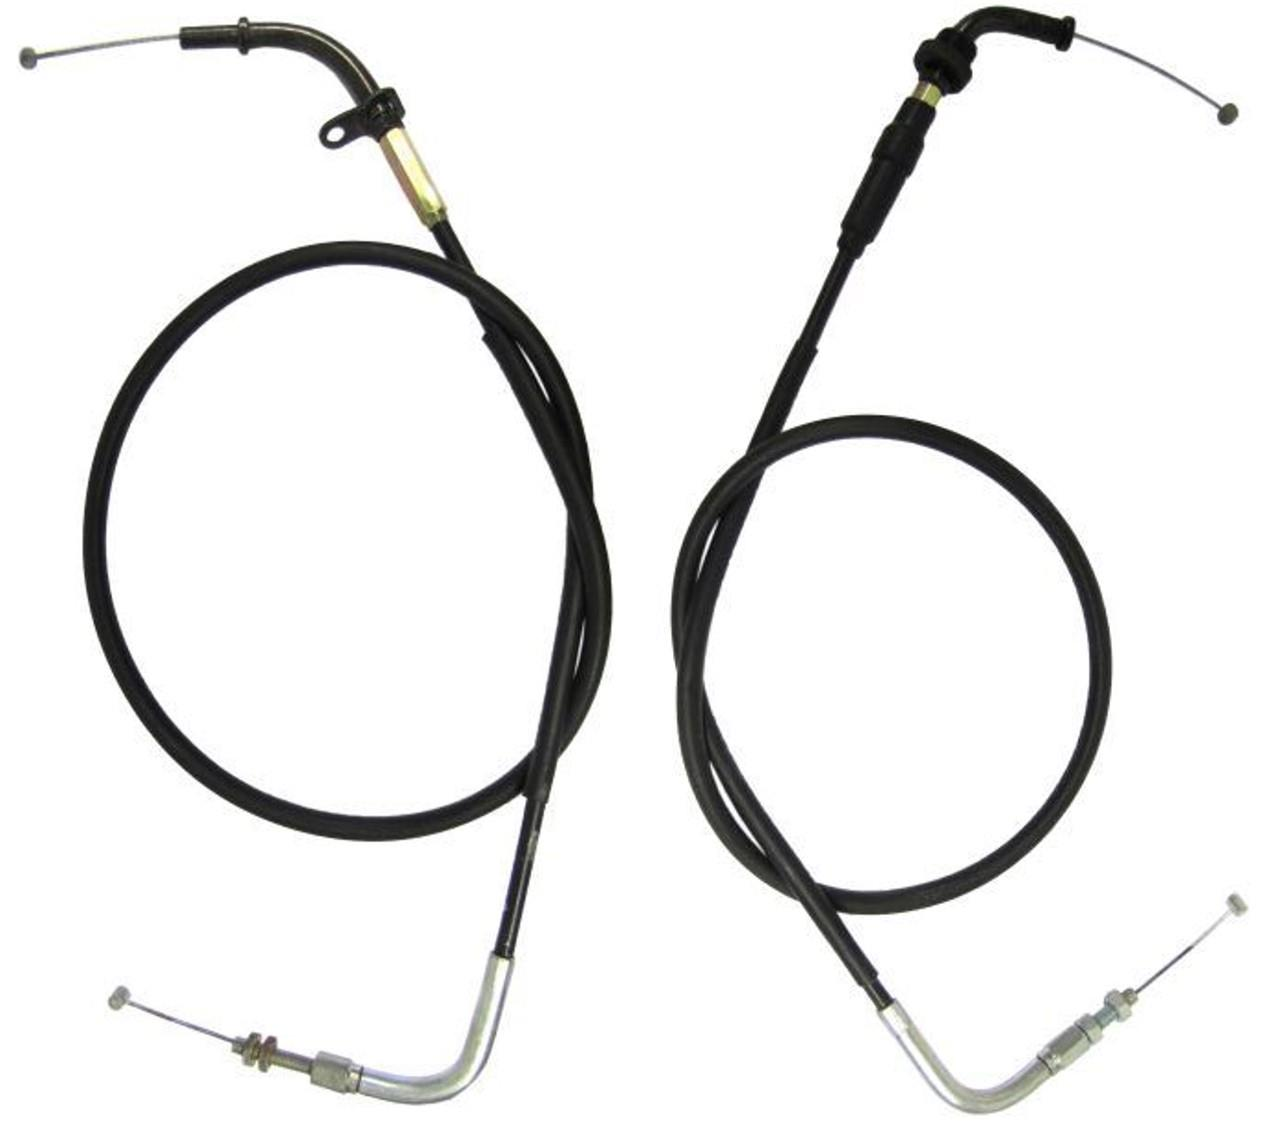 Suzuki GSF1200 Bandit Throttle Cables Push and Pull (Pair